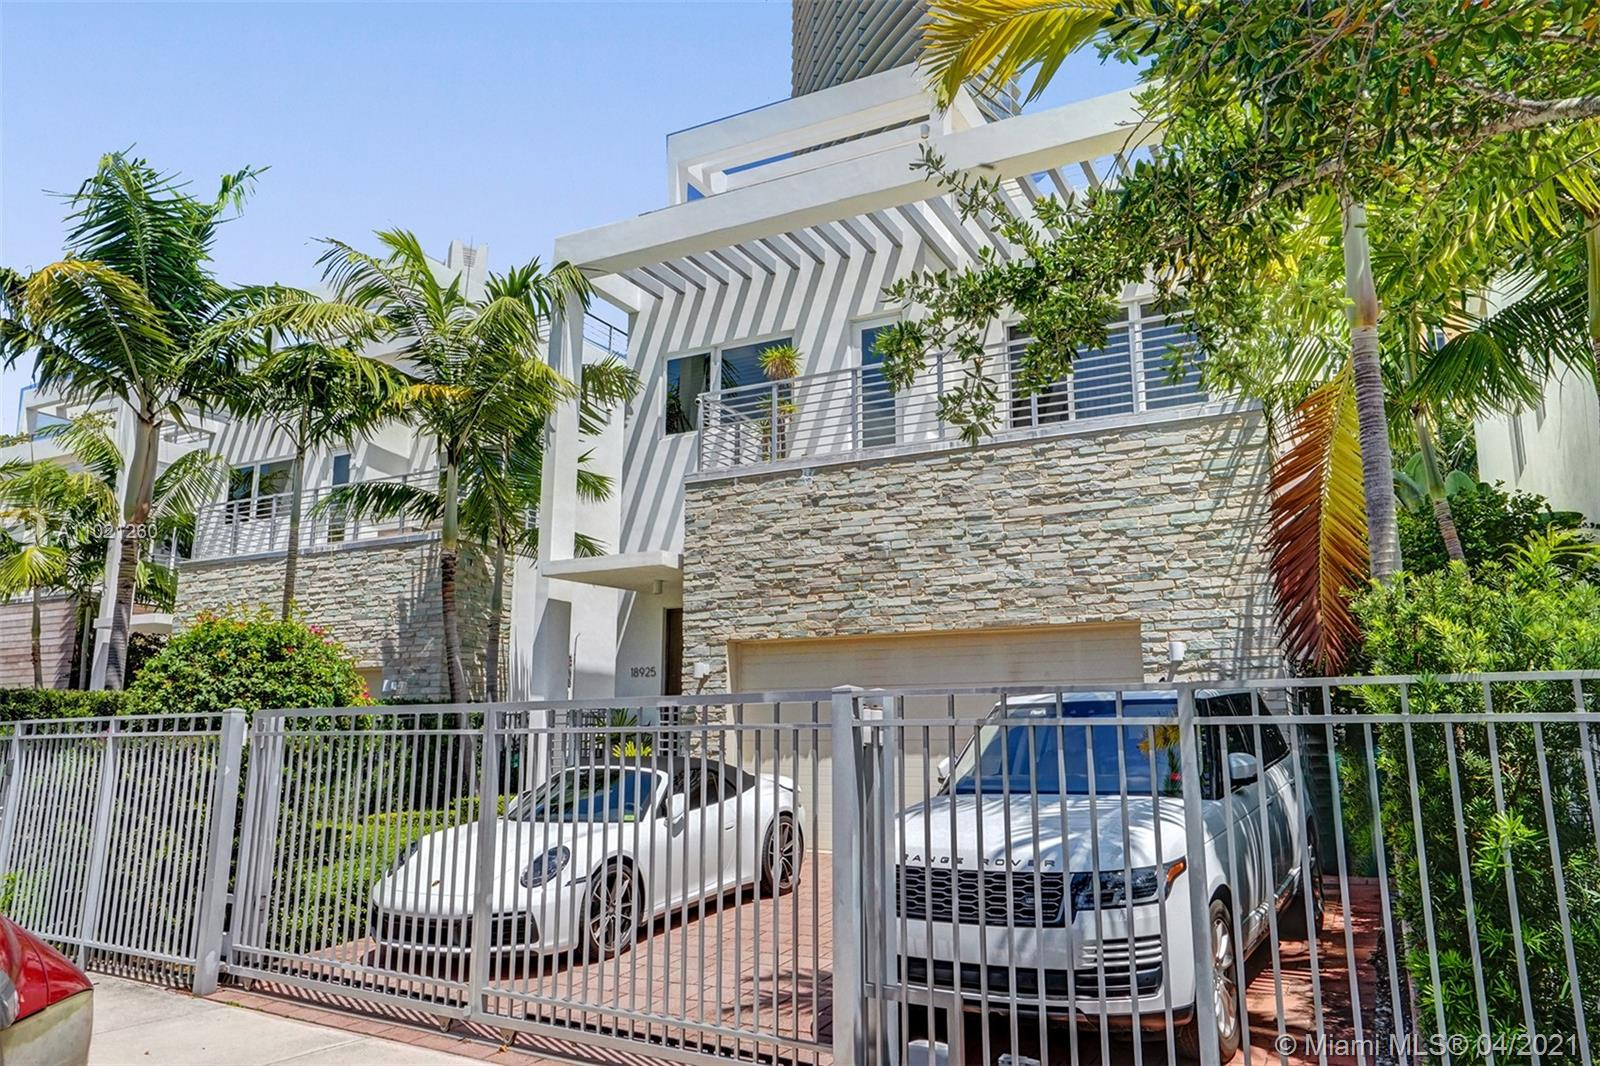 This contemporary single-family home designed by Kobi Karp offers 5 bedrooms, 4.5 bathrooms, 3200 sq ft of living space, and a 1500 sq ft rooftop terrace to watch the sunsets. The 2015-built gem is the only one of its kind for sale in this prime location (Lot #2), less than a 5-minute walk to the beach. This beautiful house offers two spacious stories and ocean views from the third-floor roof patio. 36 x 36 Glass floors throughout the 1st floor, an Italian Snaidero kitchen, Viking appliance 11ft ceilings, California closets, and much more. A resort-like backyard with a heated saltwater swimming pool and barbecue makes this the perfect home for entertaining and everyday paradise living. The home also includes a 2-car garage and gated driveway. NO HOA, NO Rent Restrictions